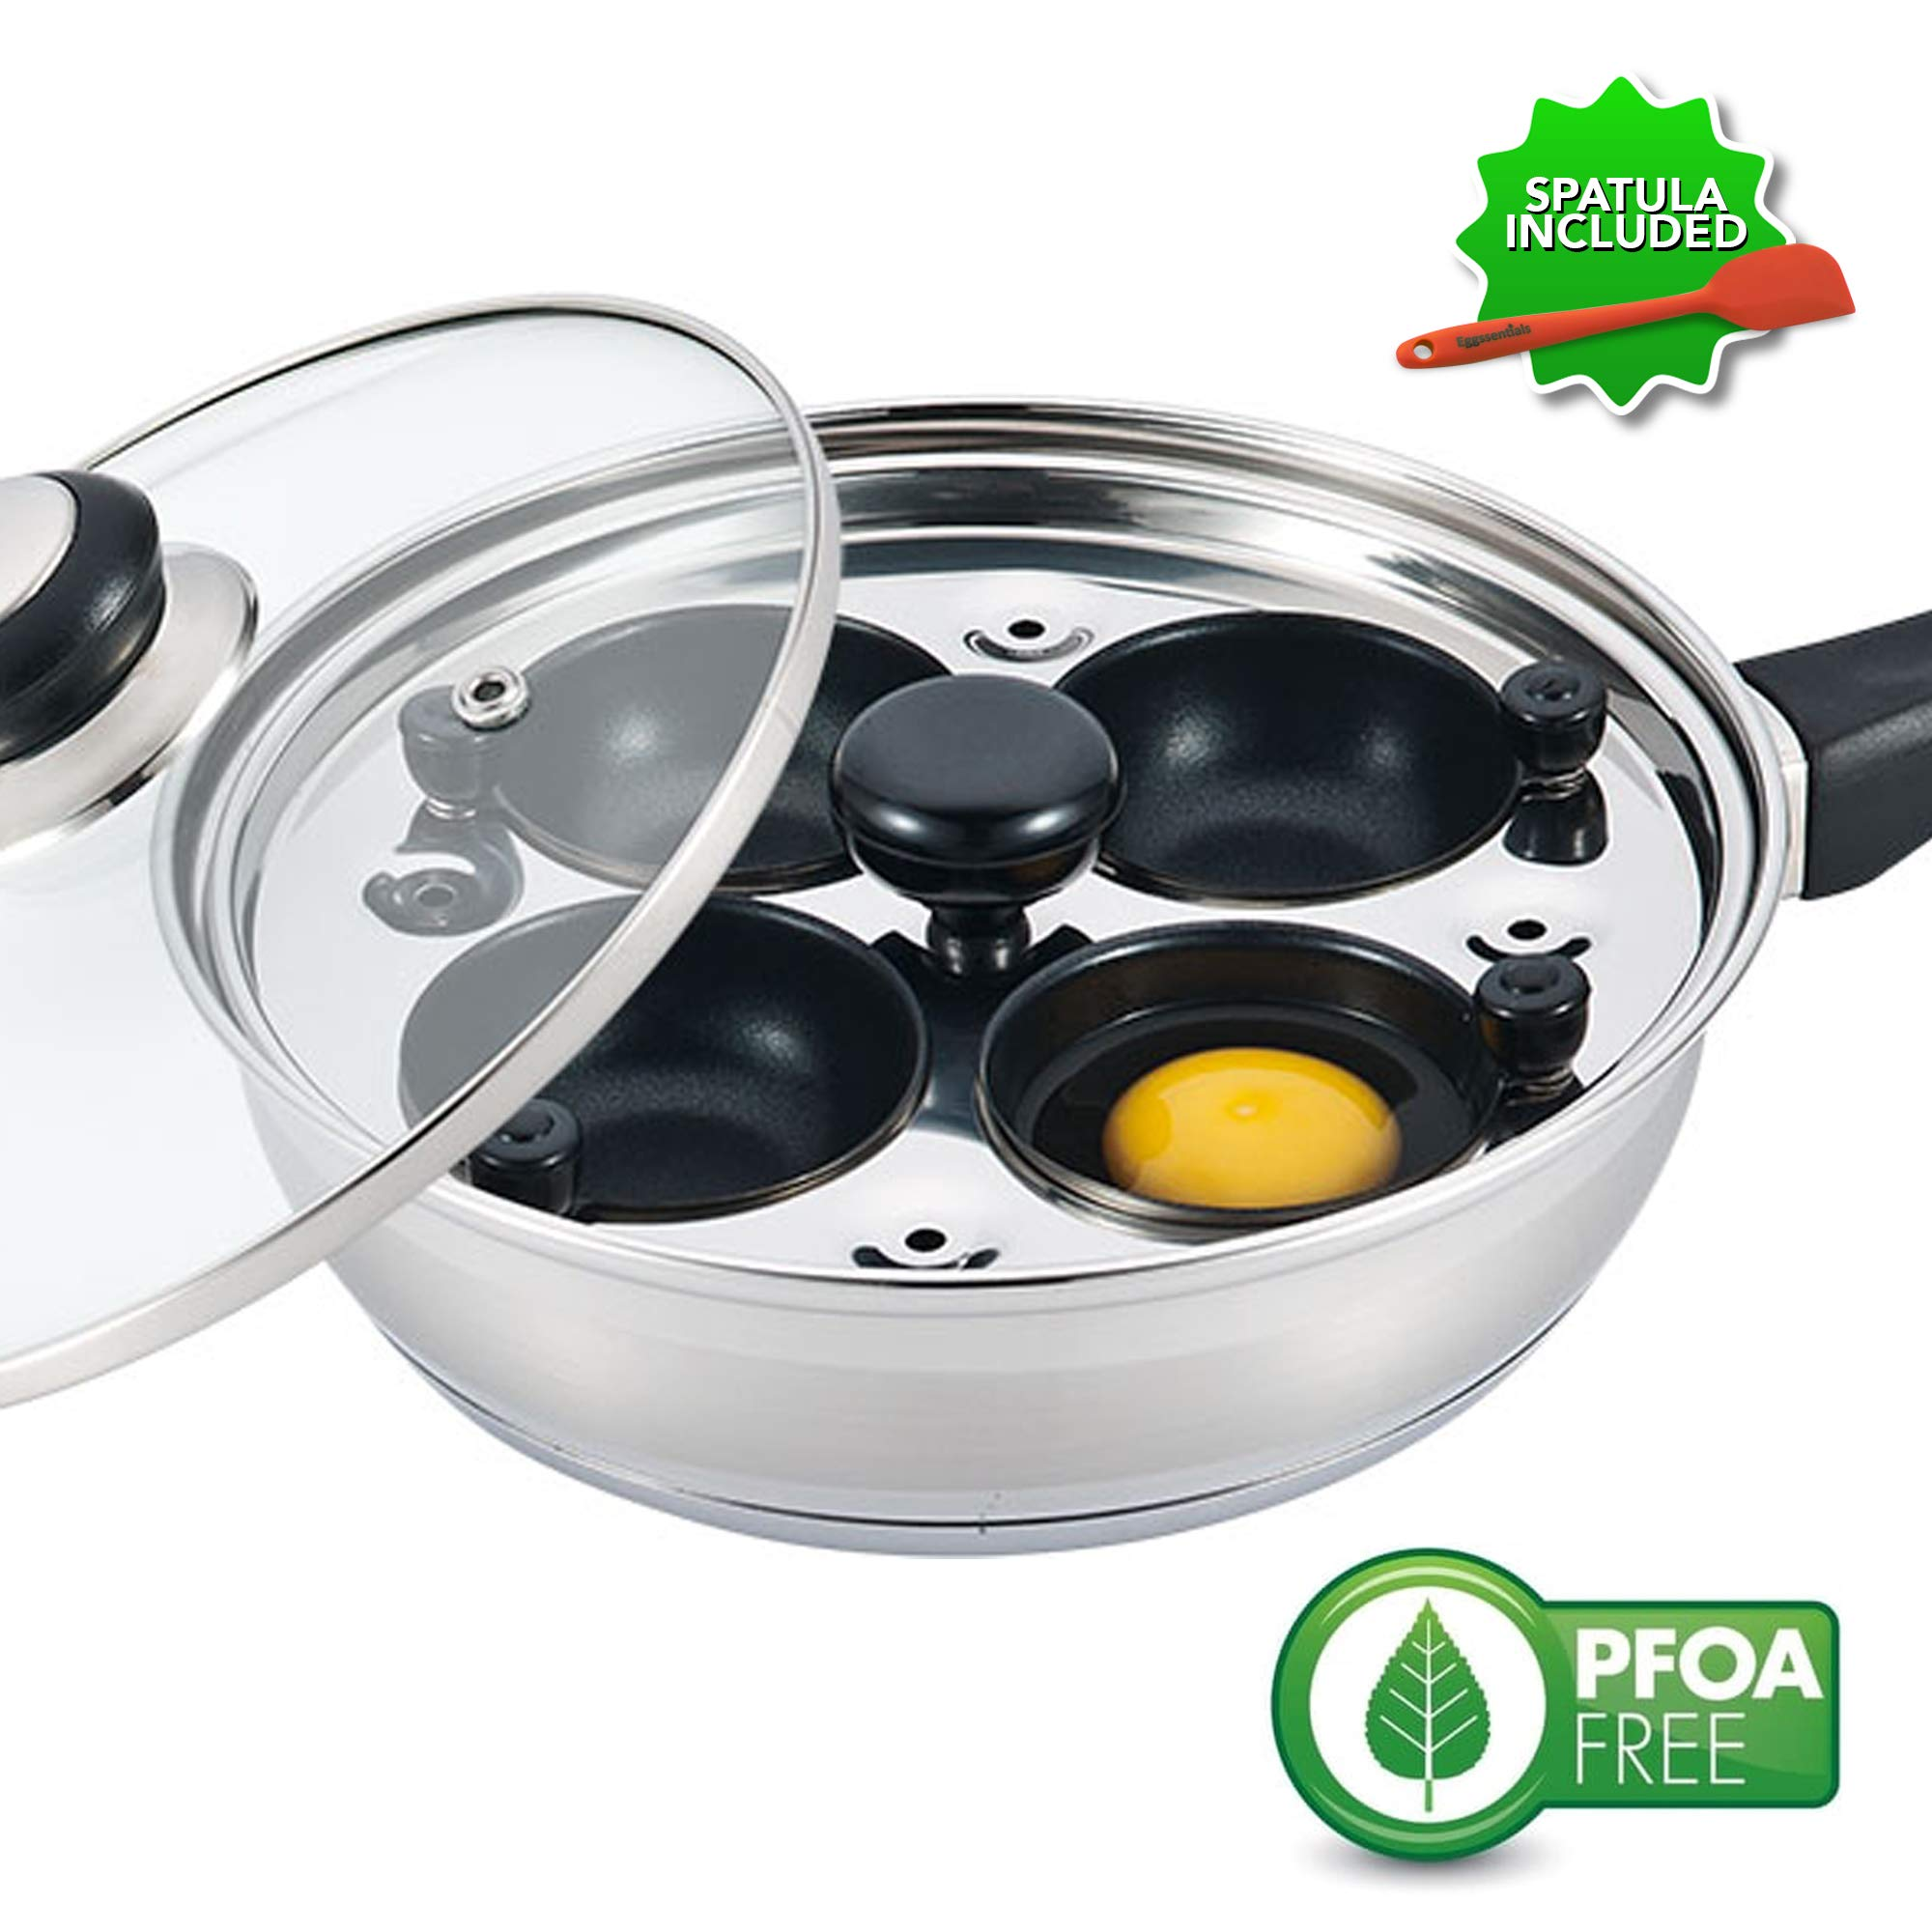 Eggssentials Poached Egg Maker - Nonstick 4 Egg Poaching Cups - Stainless Steel Egg Poacher Pan FDA Certified Food Grade Safe PFOA Free with Bonus Spatula by Eggssentials